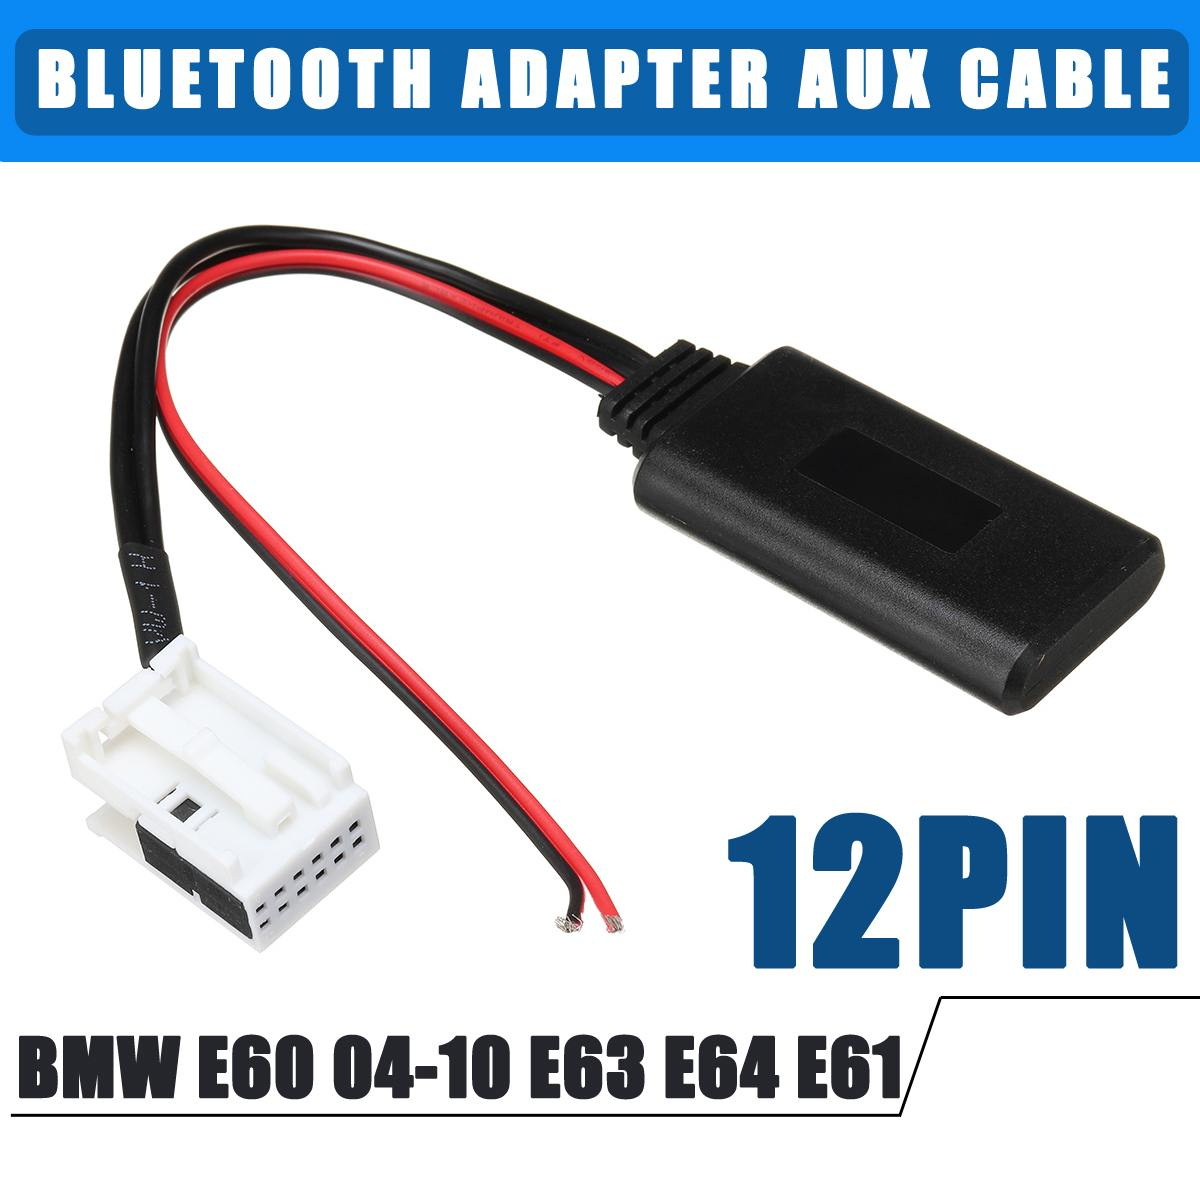 US $10 13 32% OFF|12Pin bluetooth Adapter Wireless Radio Stereo Aux Cable  Connect External Audio For BMW E60 04 10 E63 E64 E61 For iPhone For iPad-in